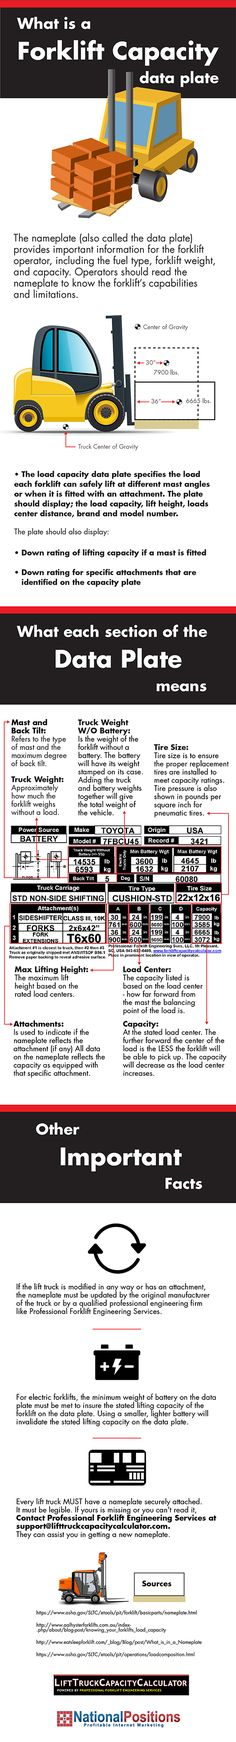 What Is a Forklift Capacity Data Plate? - The data plate is a vital part of the safety of the forklift and includes information such as fuel type, weight and more.   - sponsored